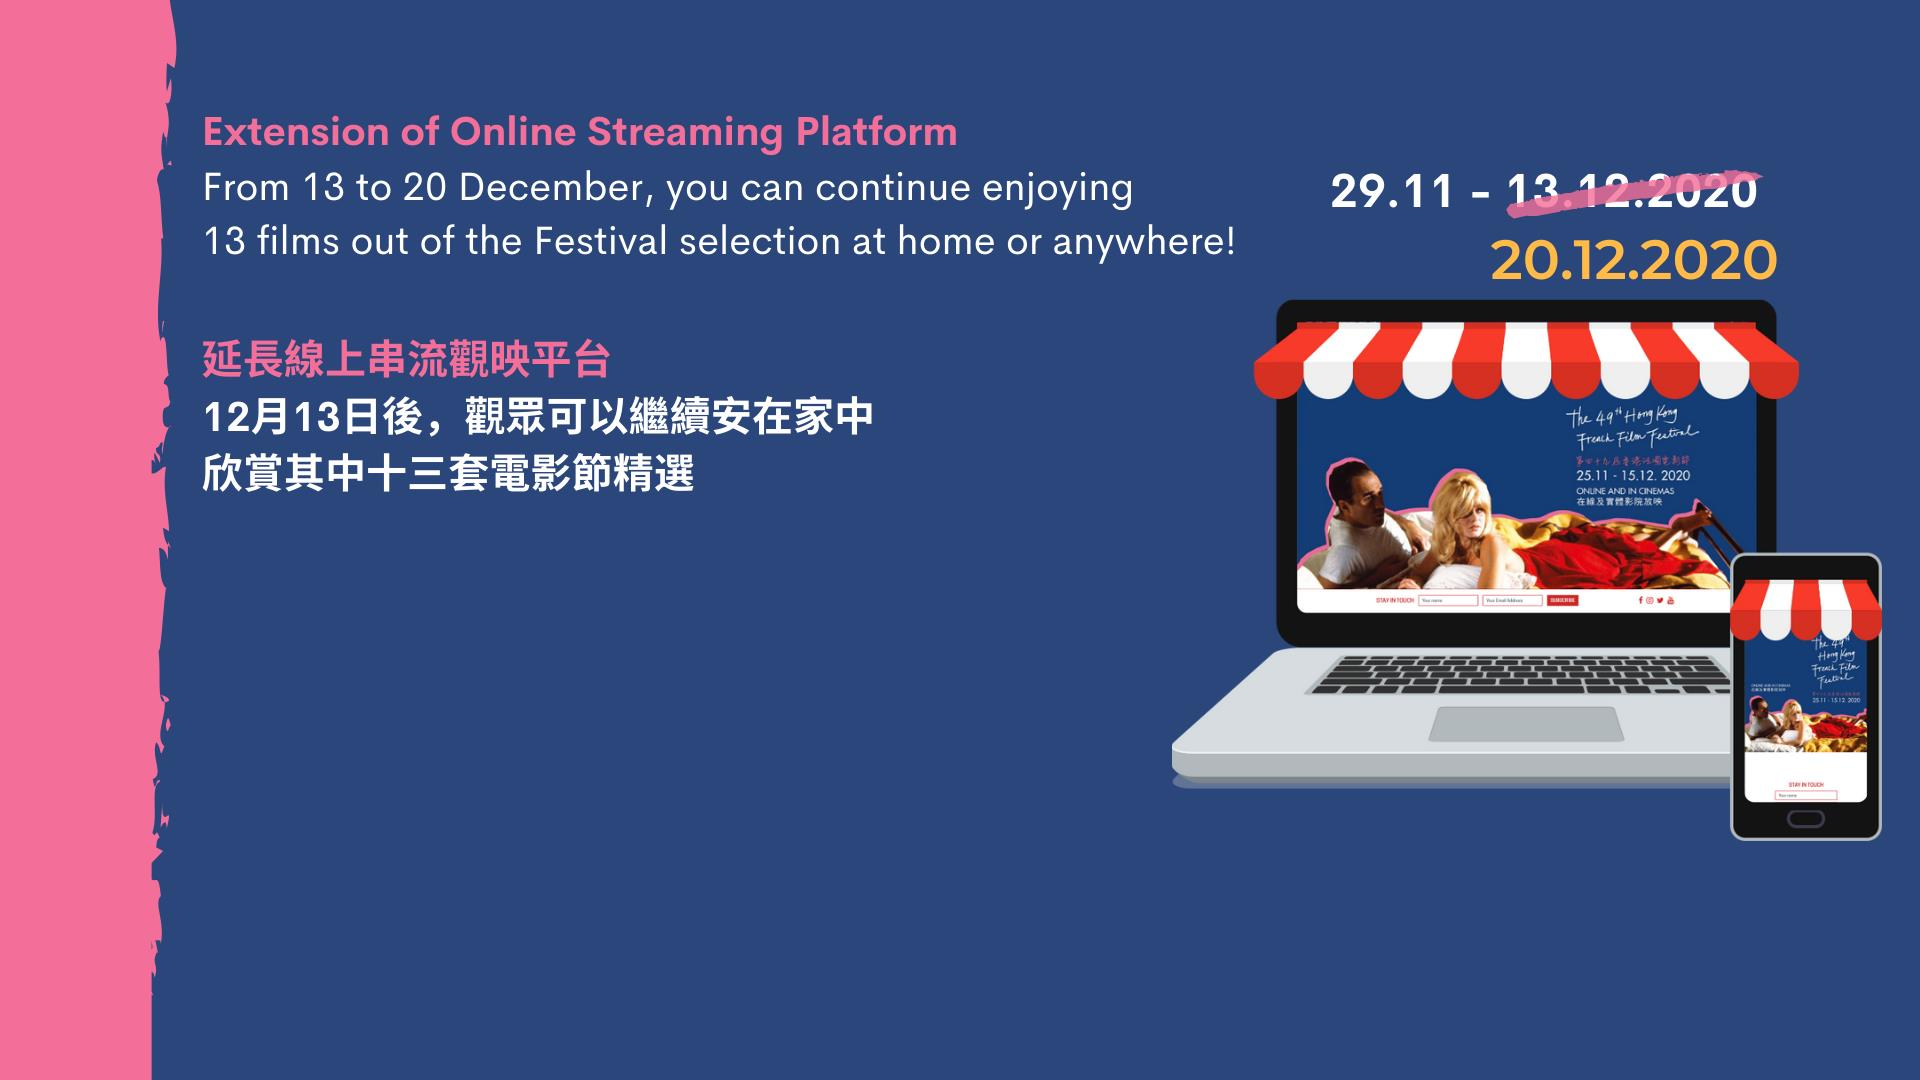 extension of online platform